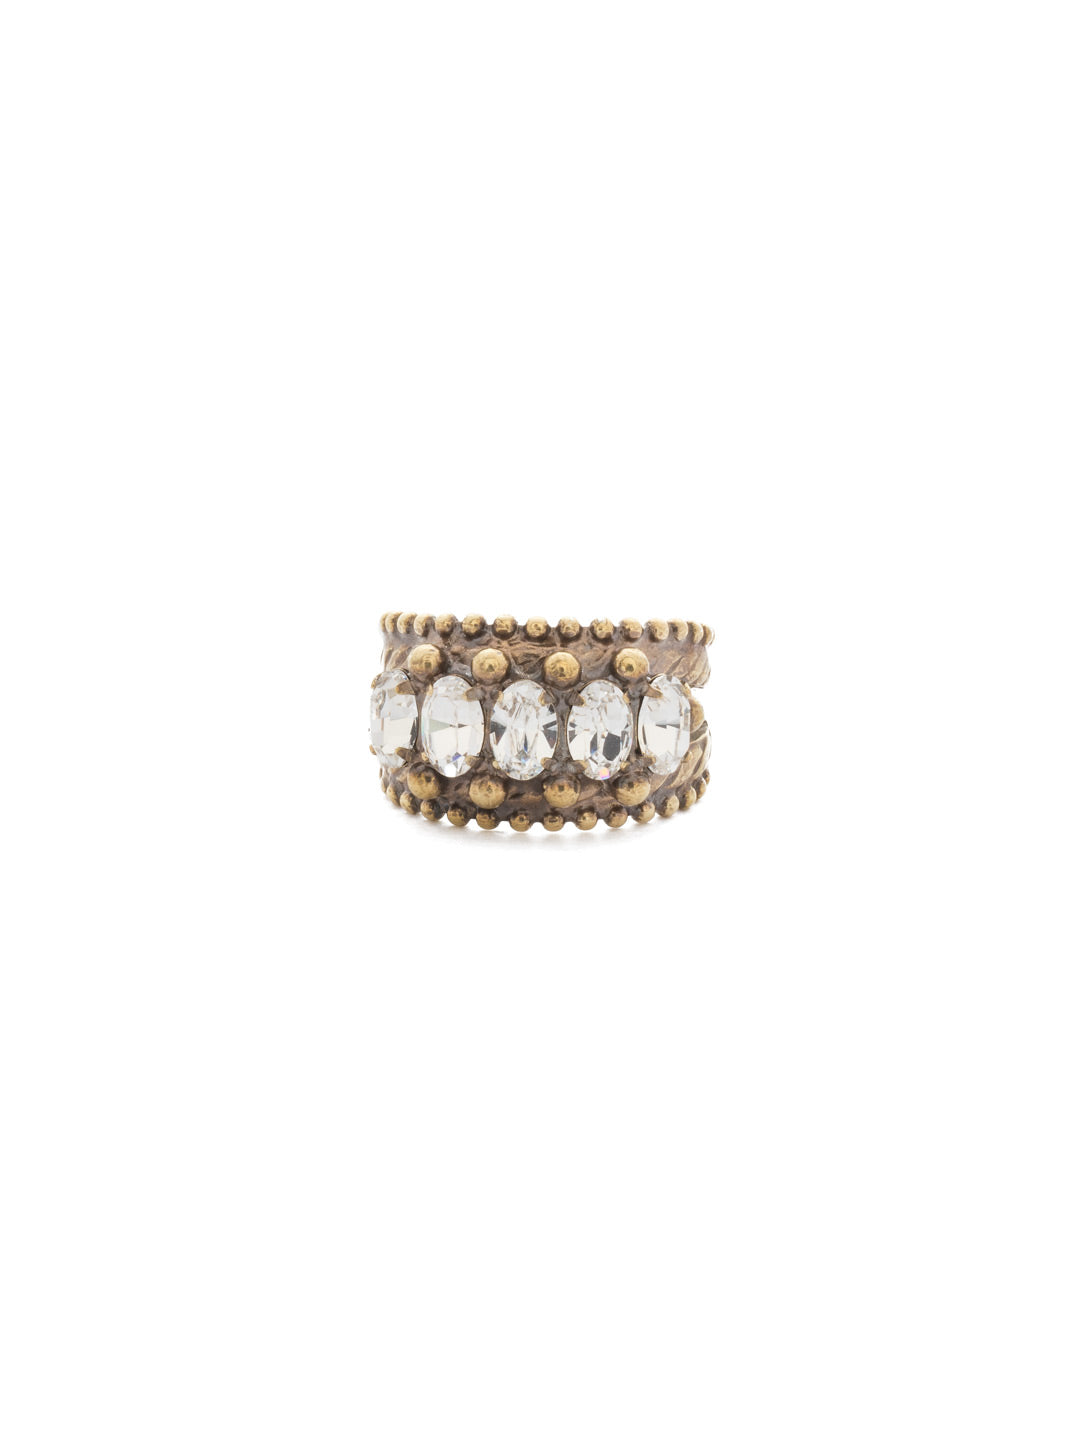 Crown Jewel Cocktail Ring - RDH2AGCRY